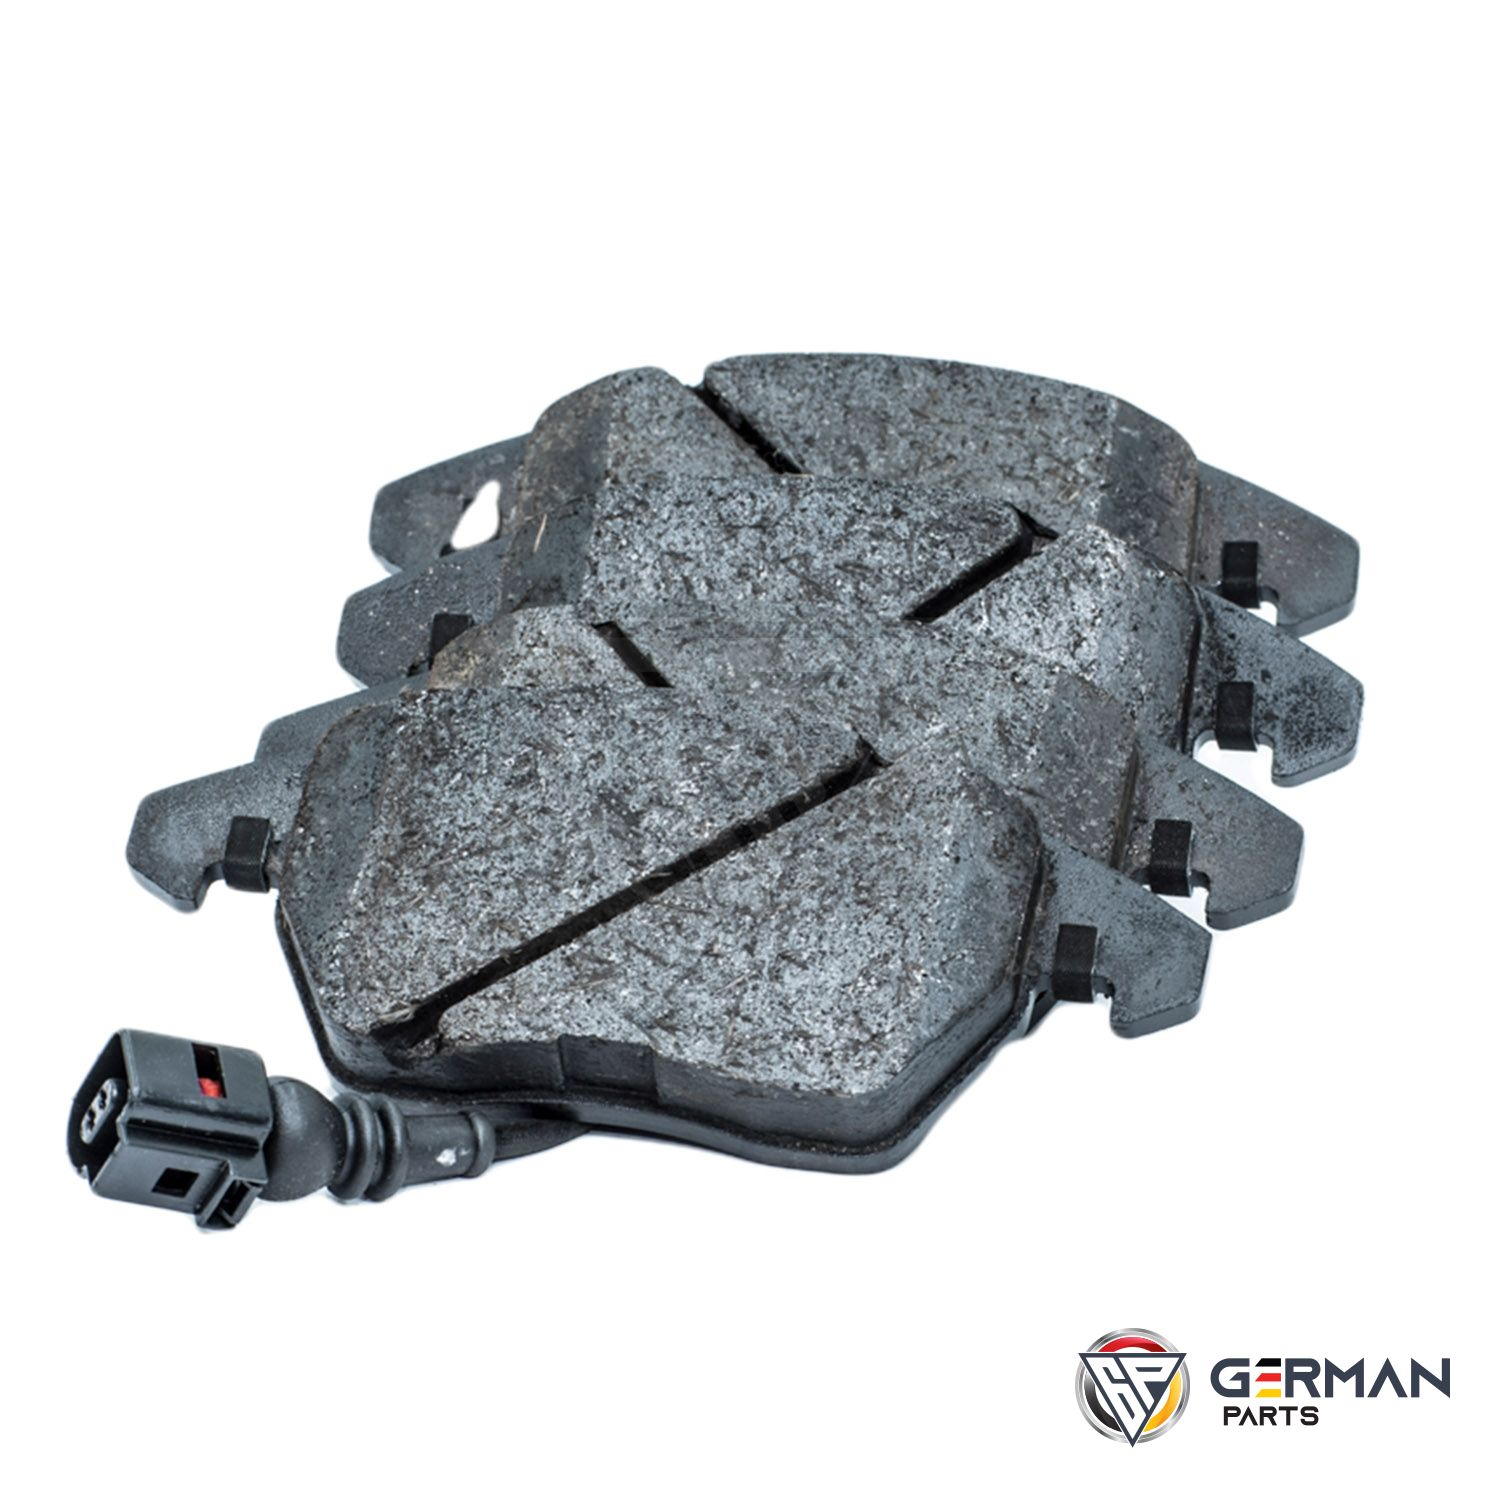 Buy Genuine Audi/Volkswagen Front Brake Pad Set JZW698151B - German Parts